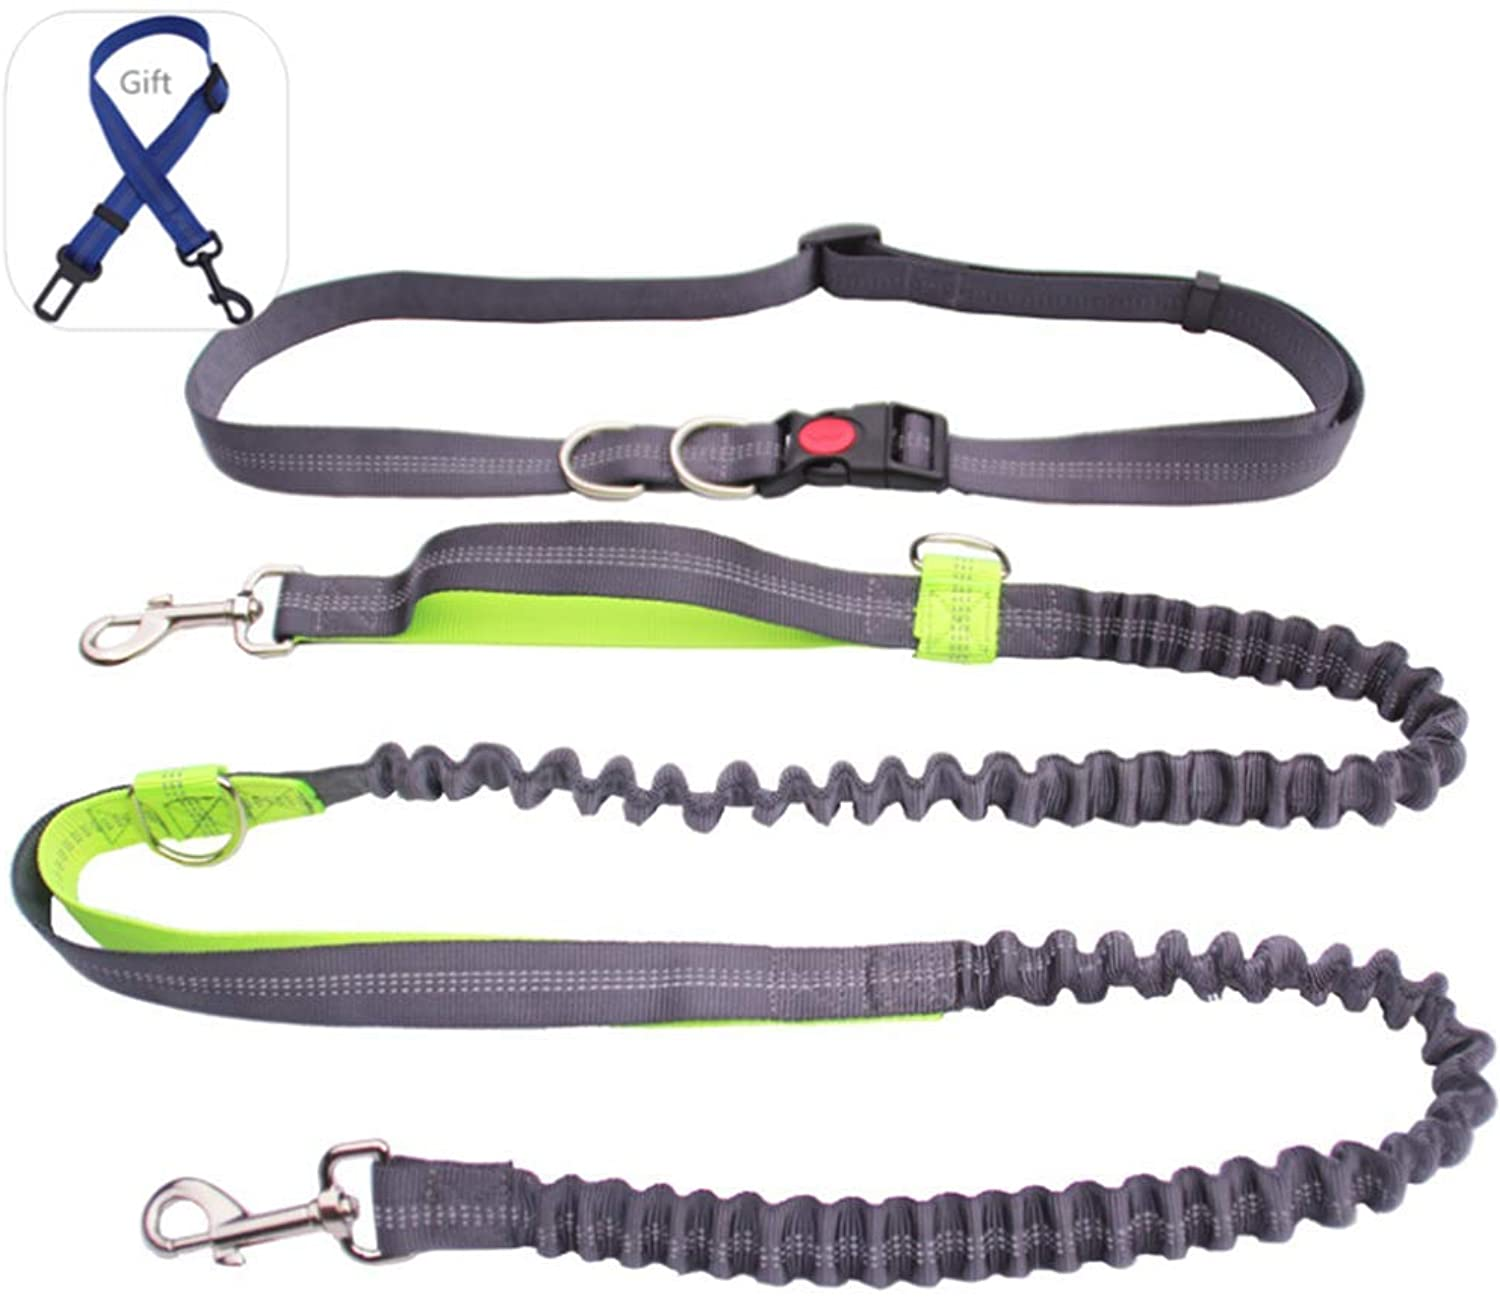 Dog Hands Free Leads Walking Leash Adjustable Waist Belt Shock Absorbing Extendible Bungee for Running Walking Training Hiking